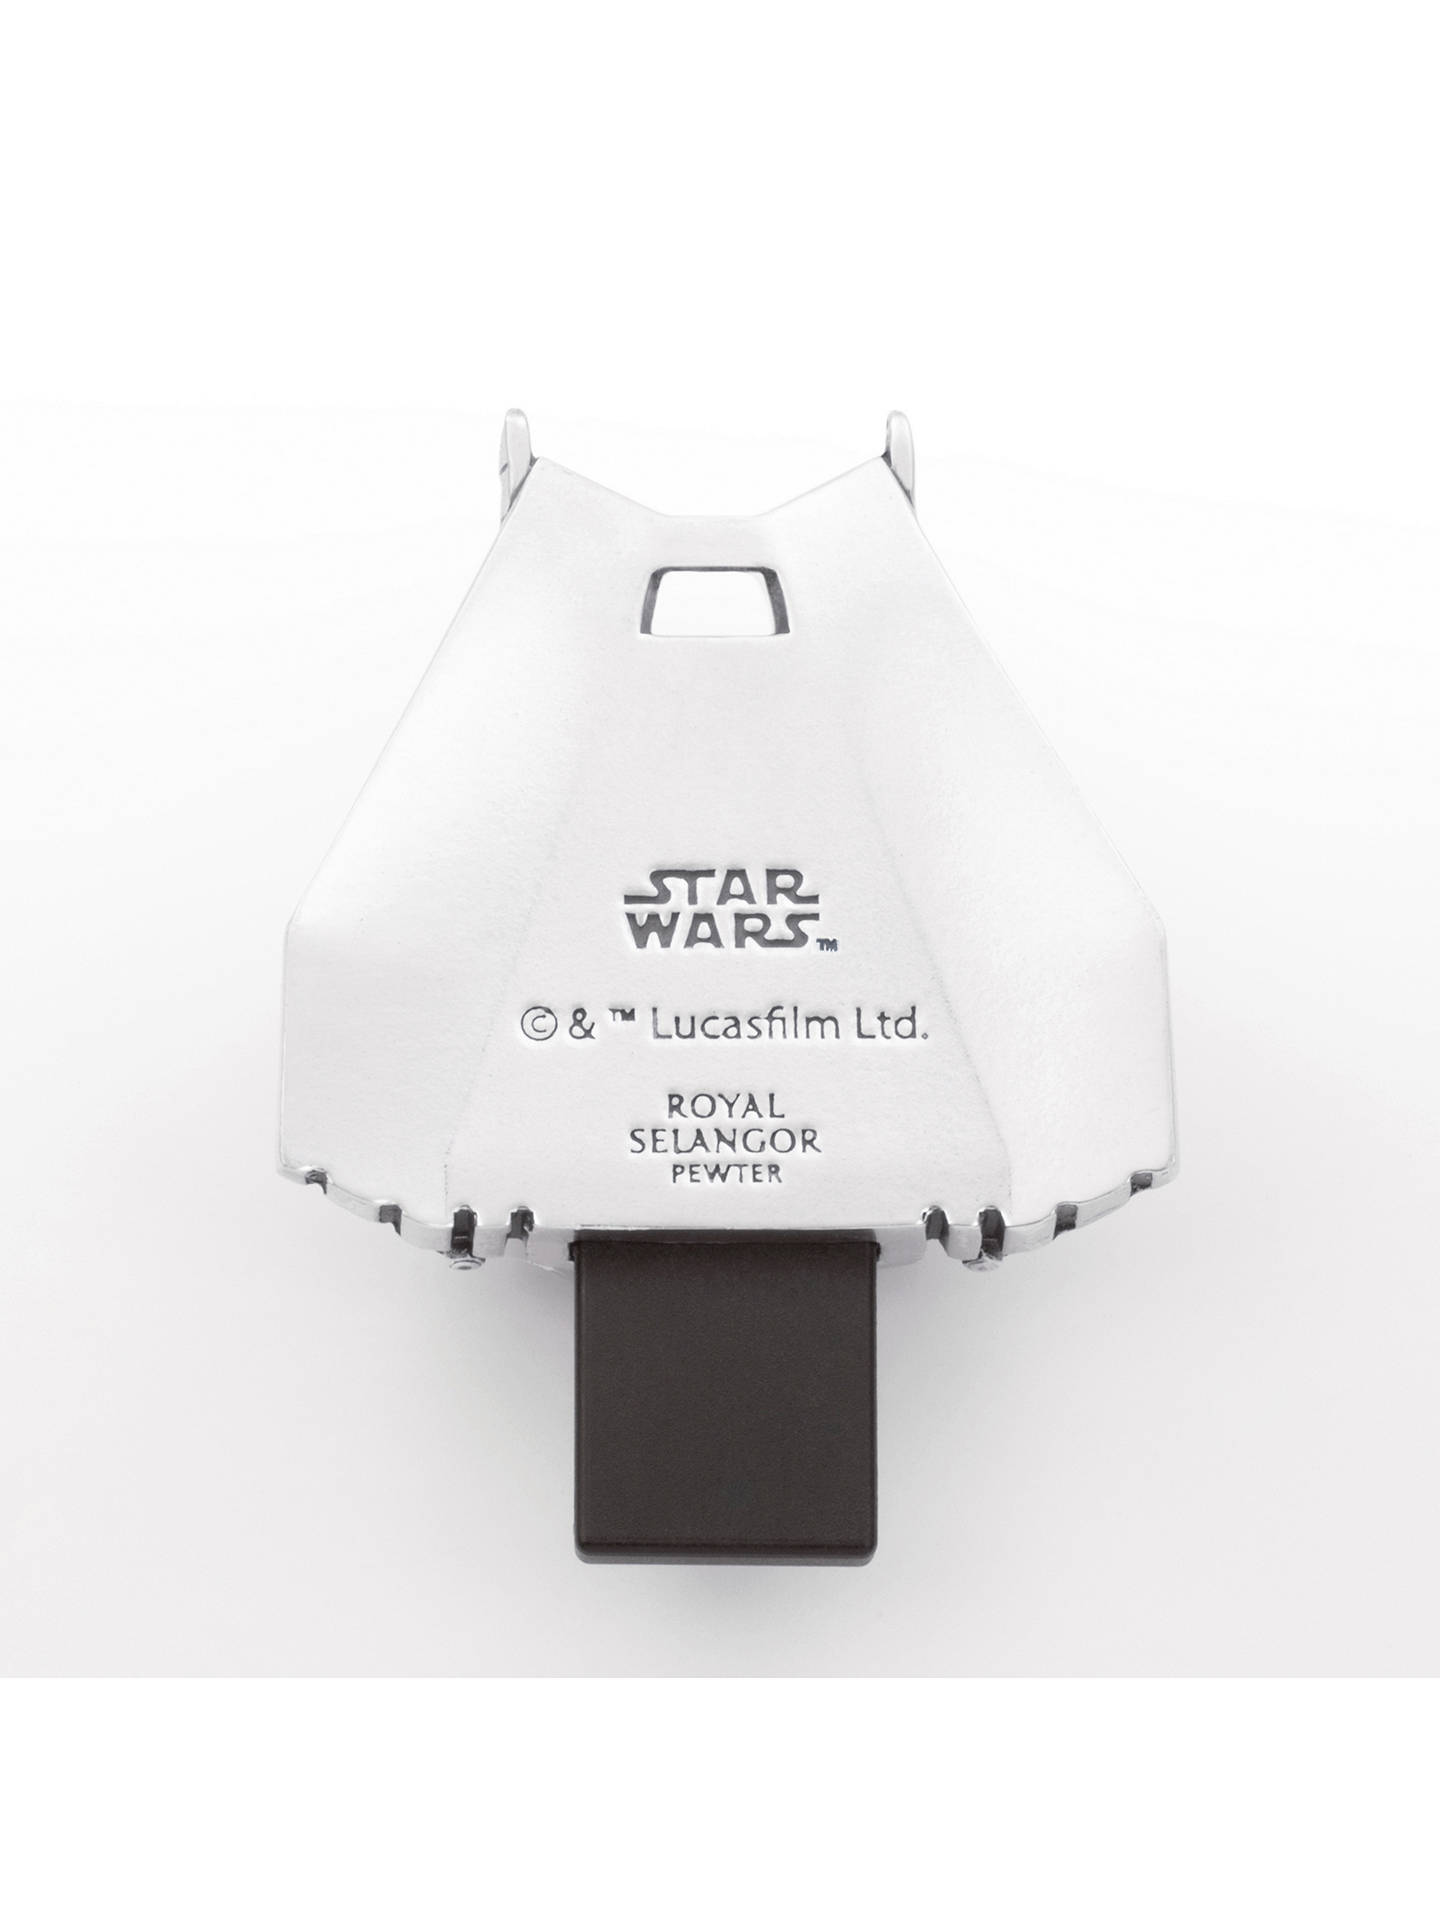 a35afd02c1e1 ... Buy Royal Selangor Star Wars Snowspeeder USB Flash Drive